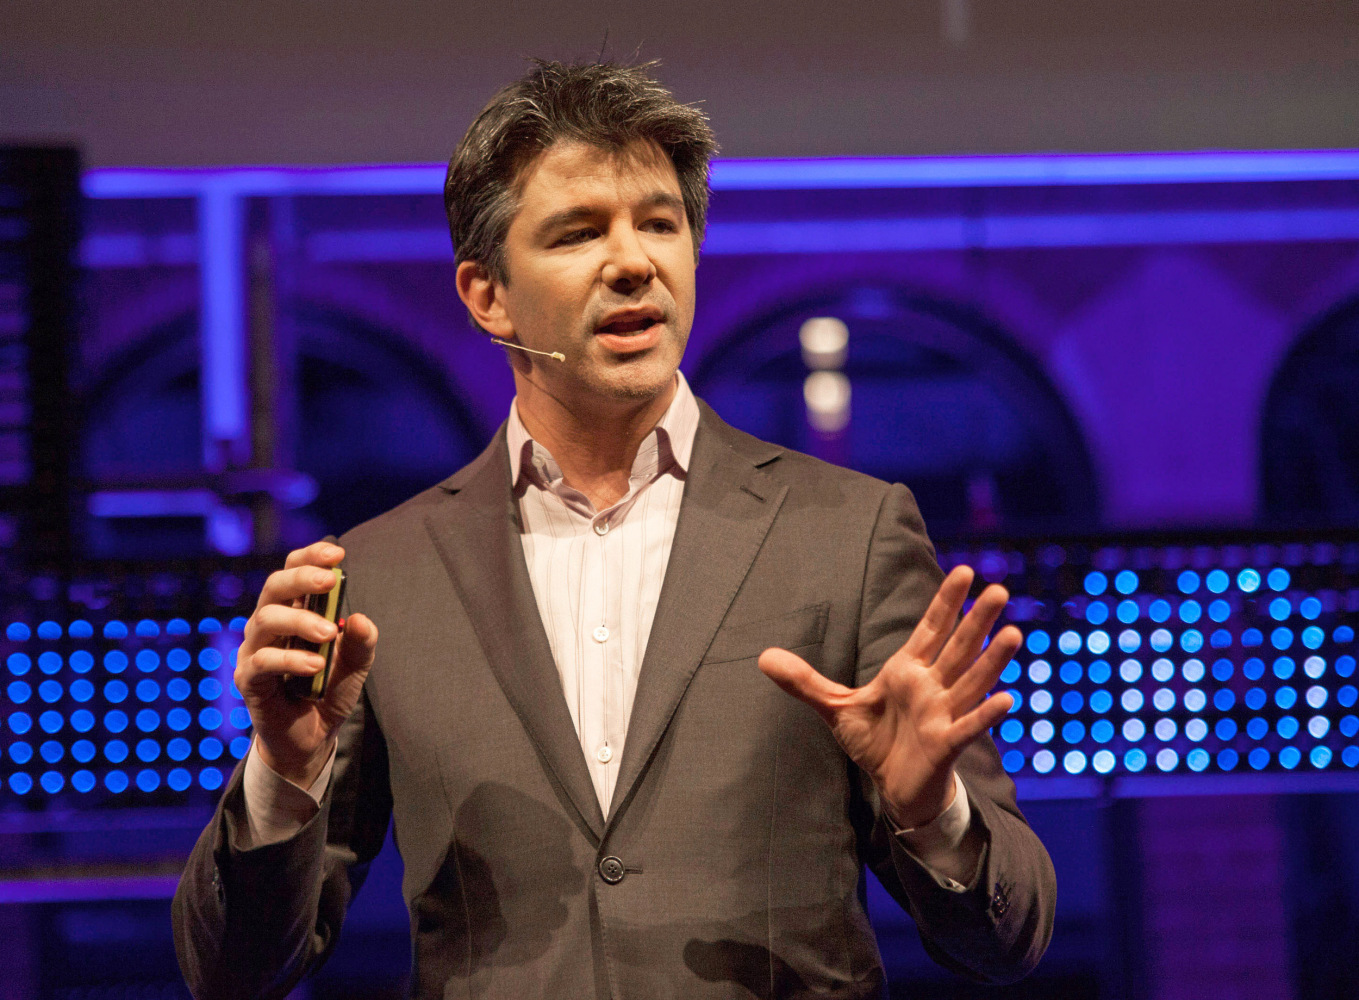 Uber CEO Trevor Kalanick resigns after investor pressure